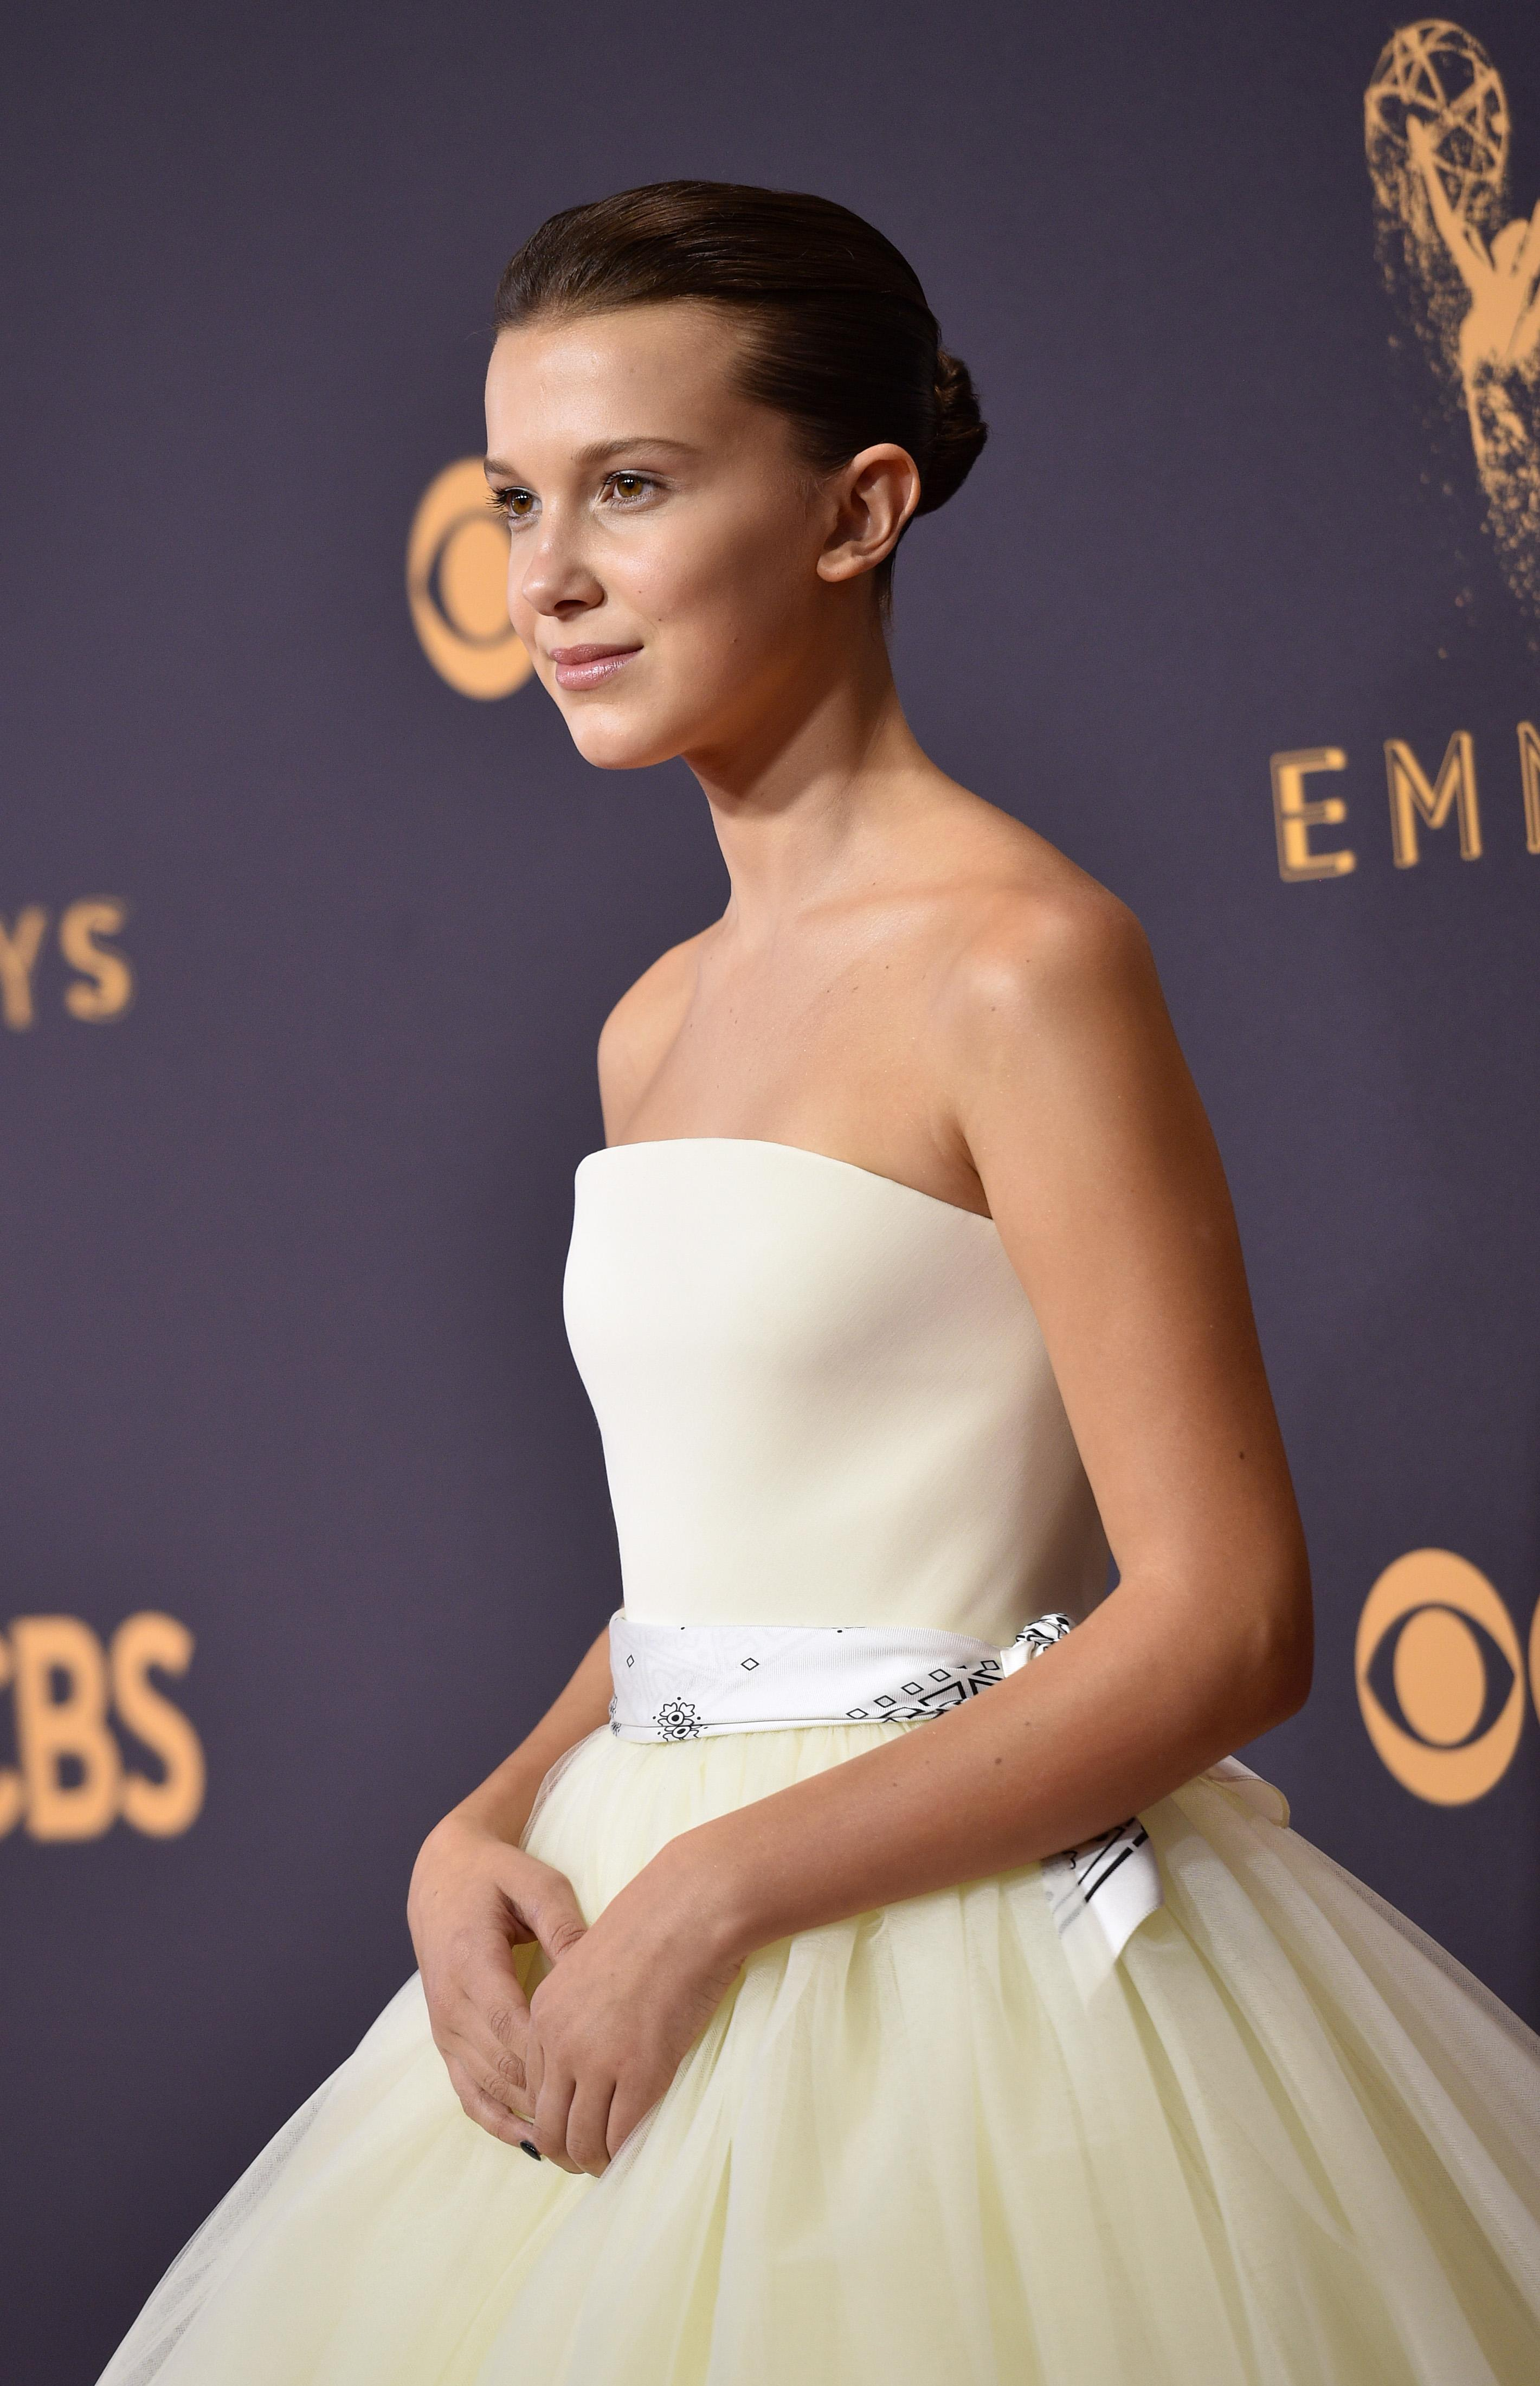 Emmys 2017 Red Carpet Arrivals Photo Gallery